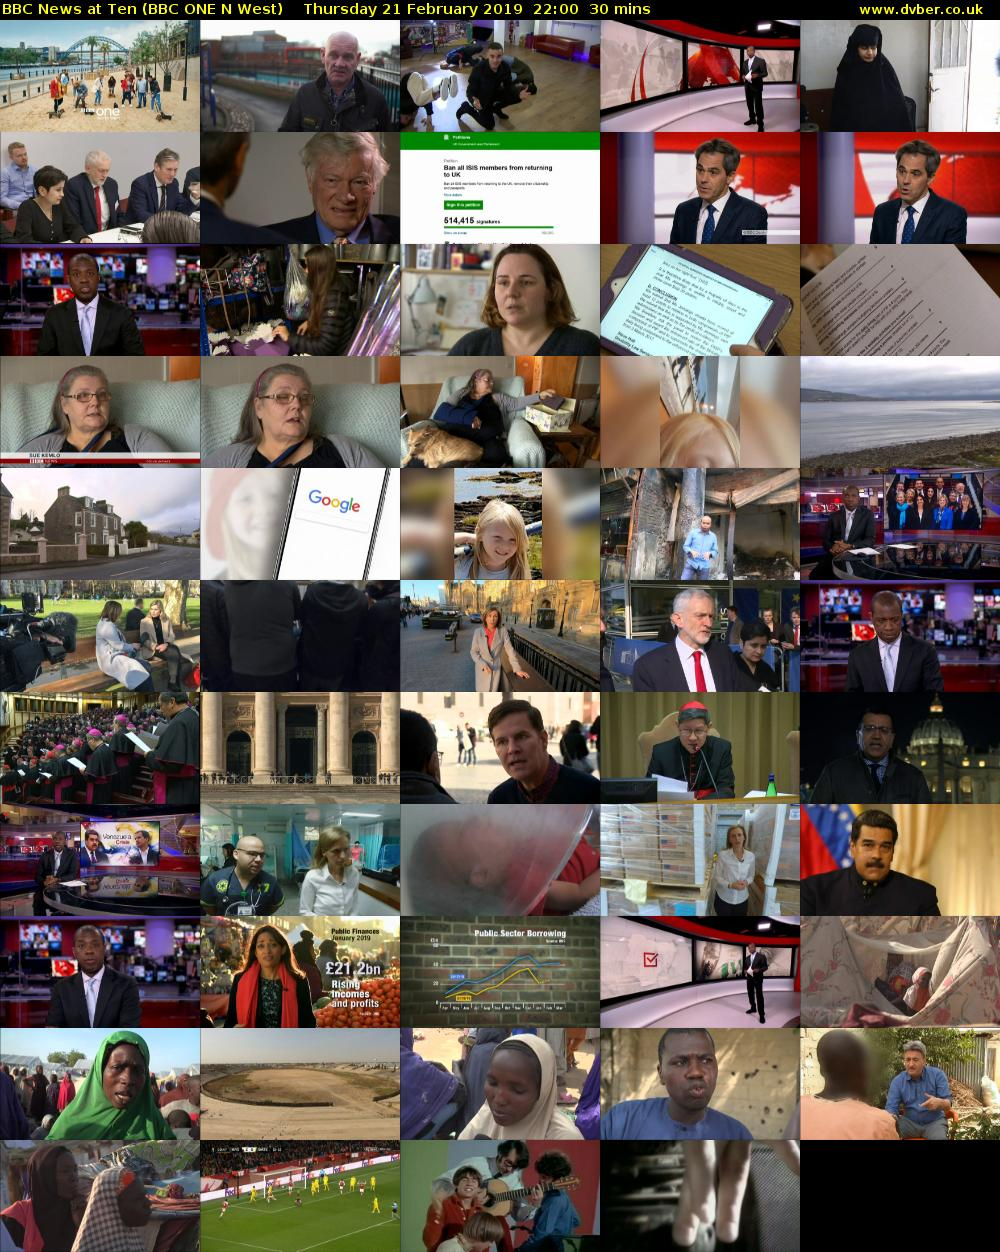 BBC News at Ten (BBC ONE N West) Thursday 21 February 2019 22:00 - 22:30